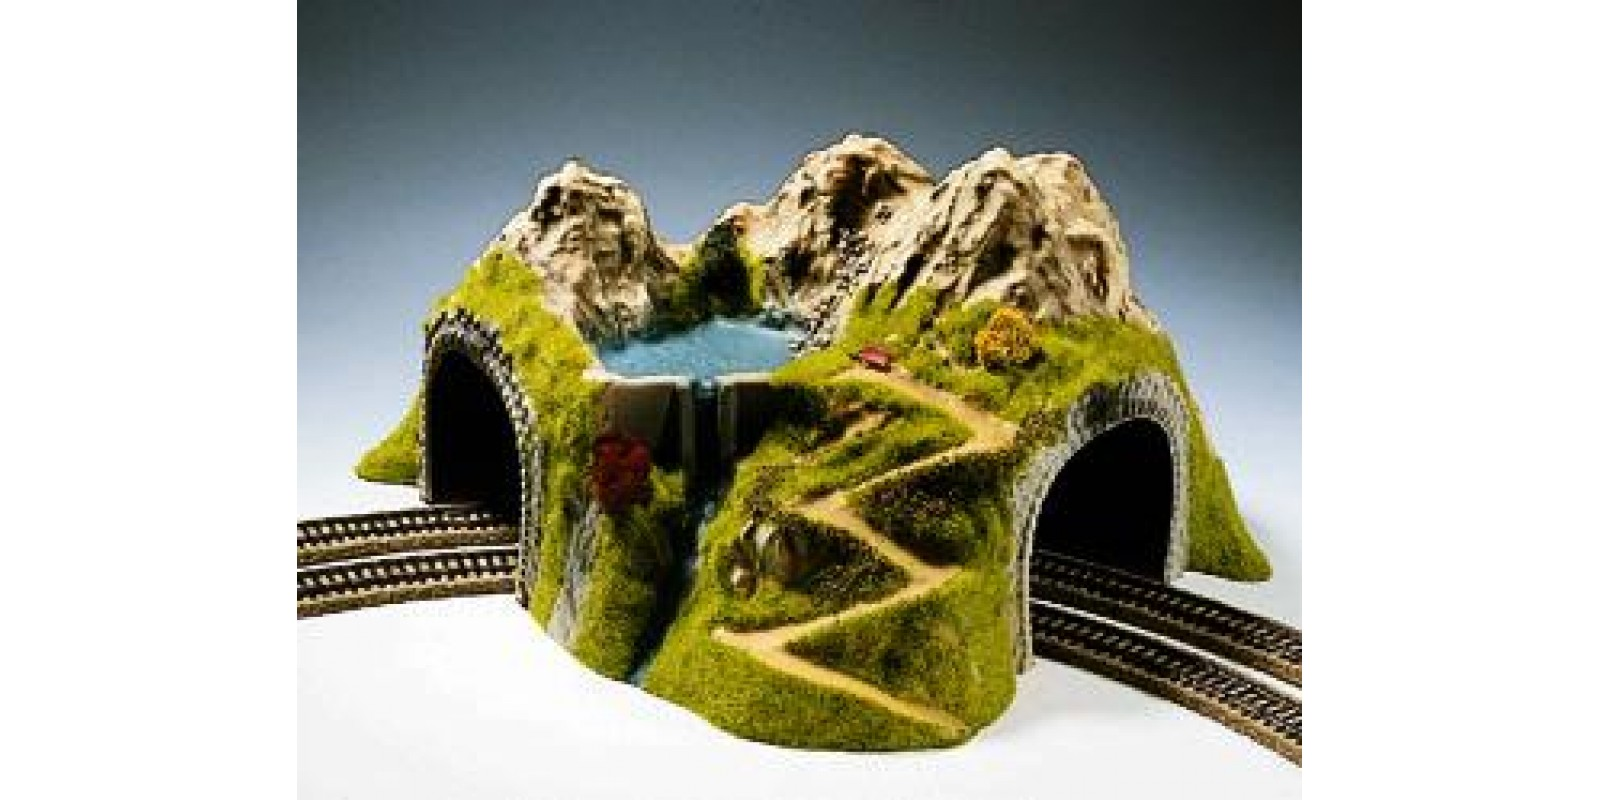 NO05180 Curved Tunnel, Double Track, 43 x 41 cm, 23 cm Height